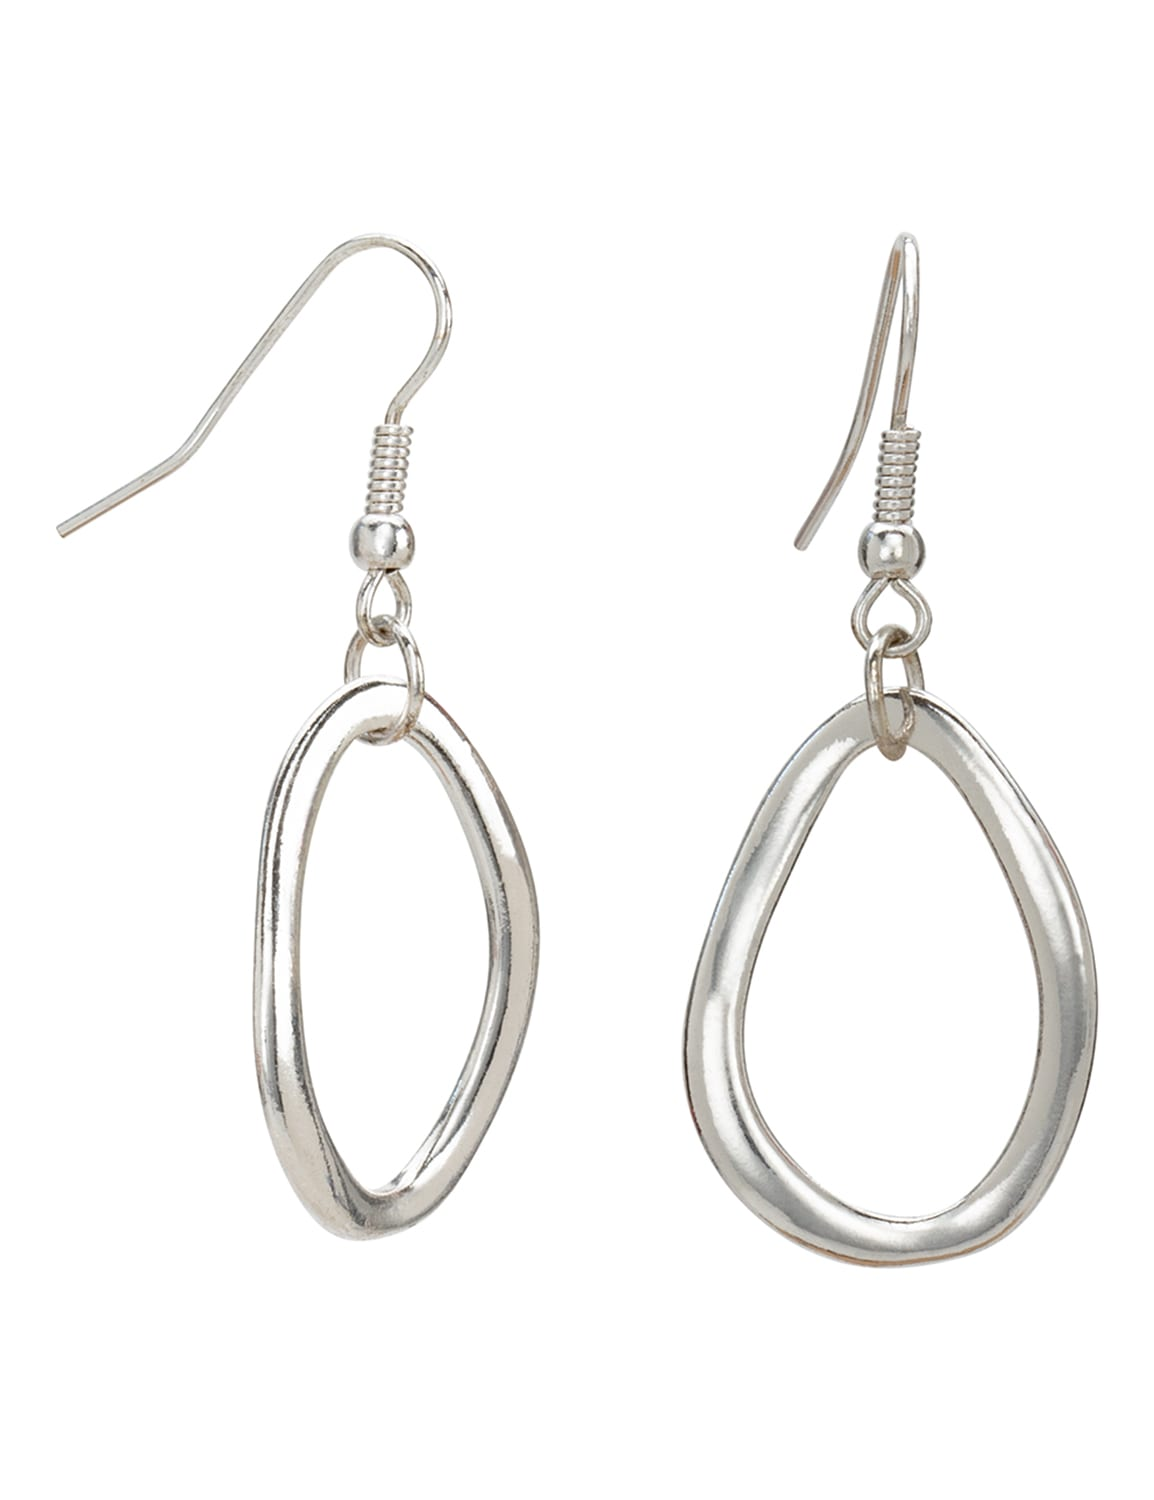 Simple Silver Trio Earring Set - Silver - Detail